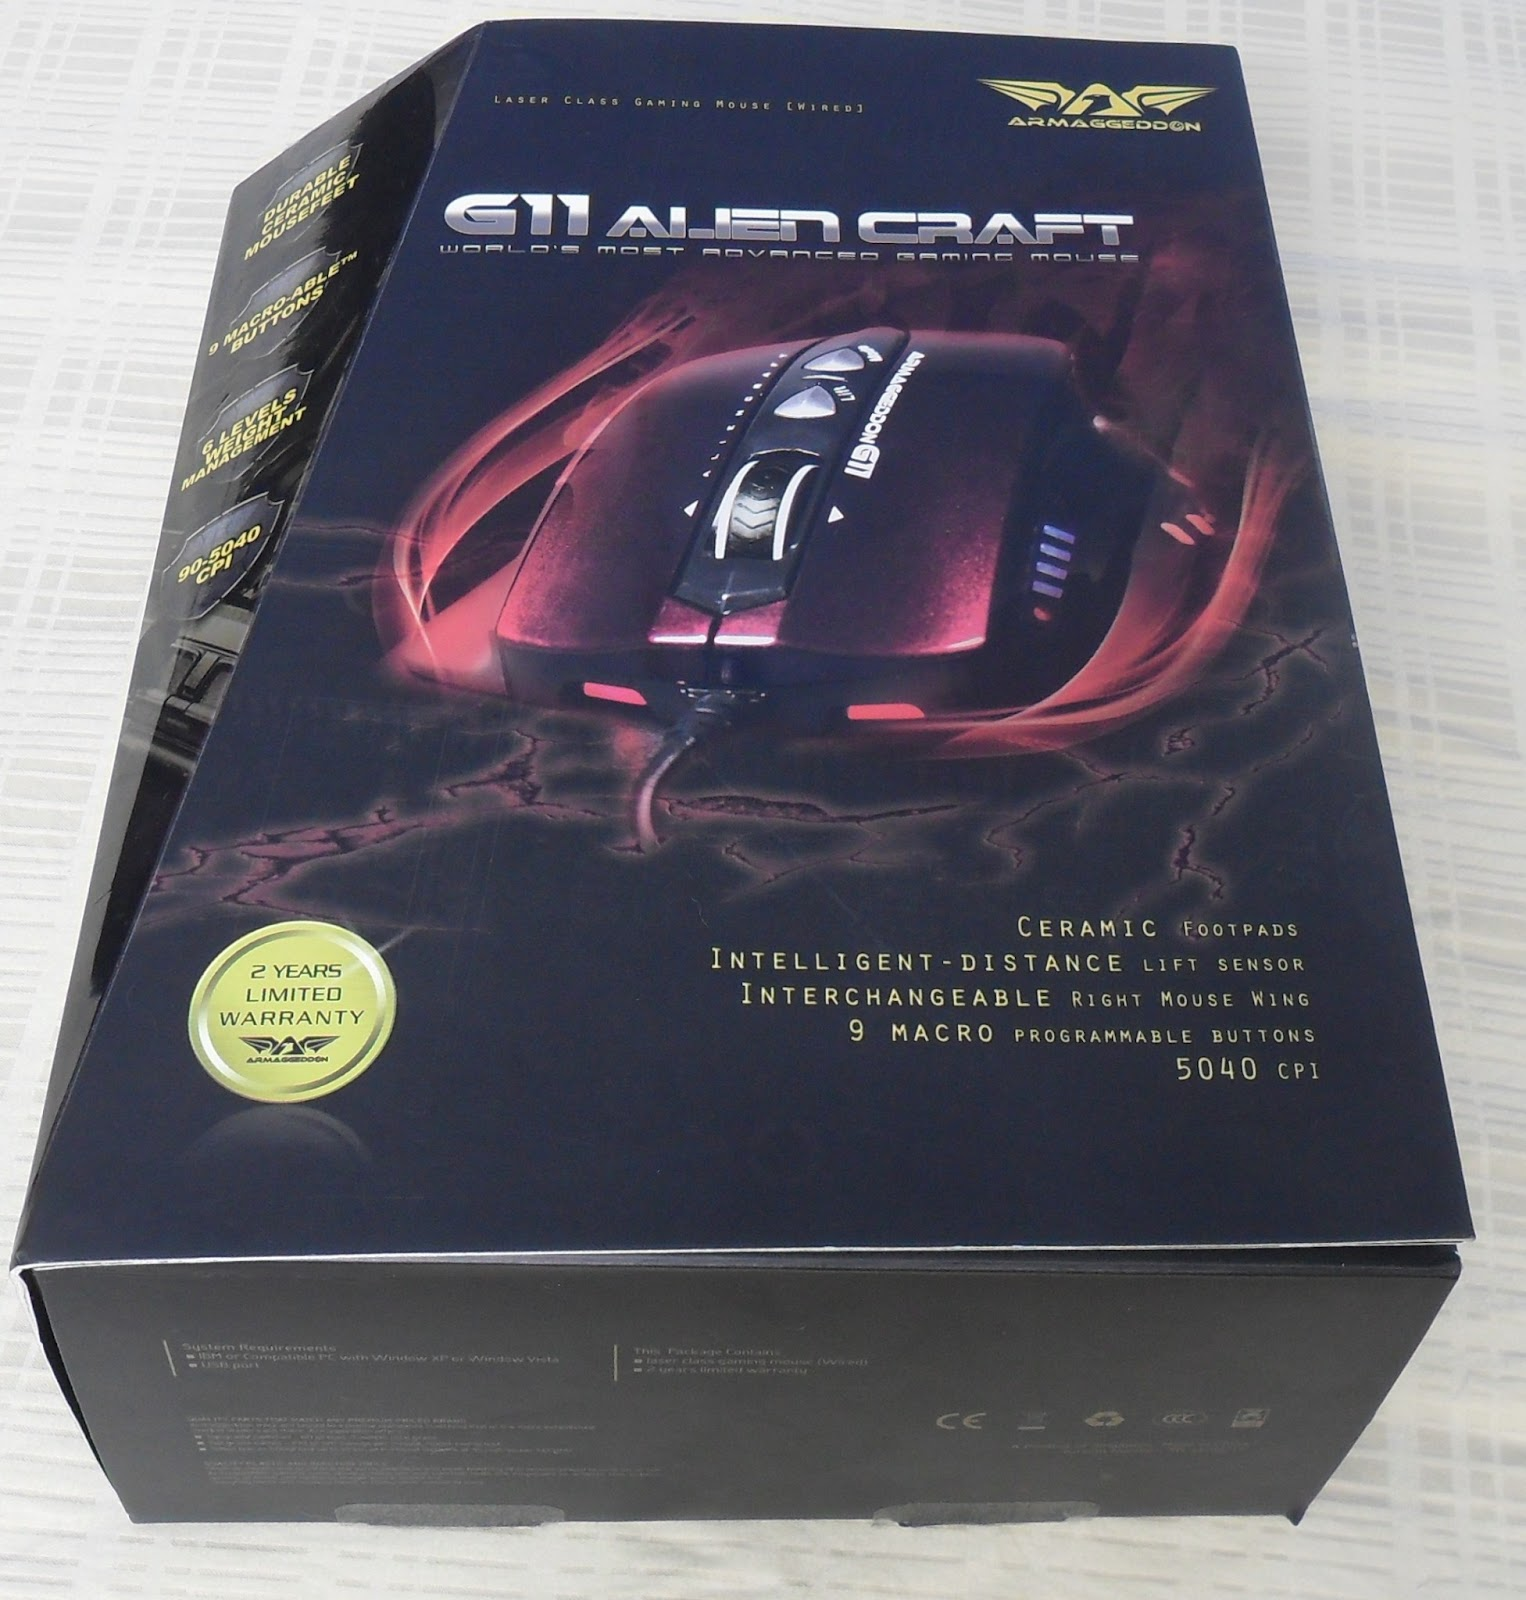 Unboxing & Review: Armaggeddon G11 Alien Craft Gaming Mouse 55